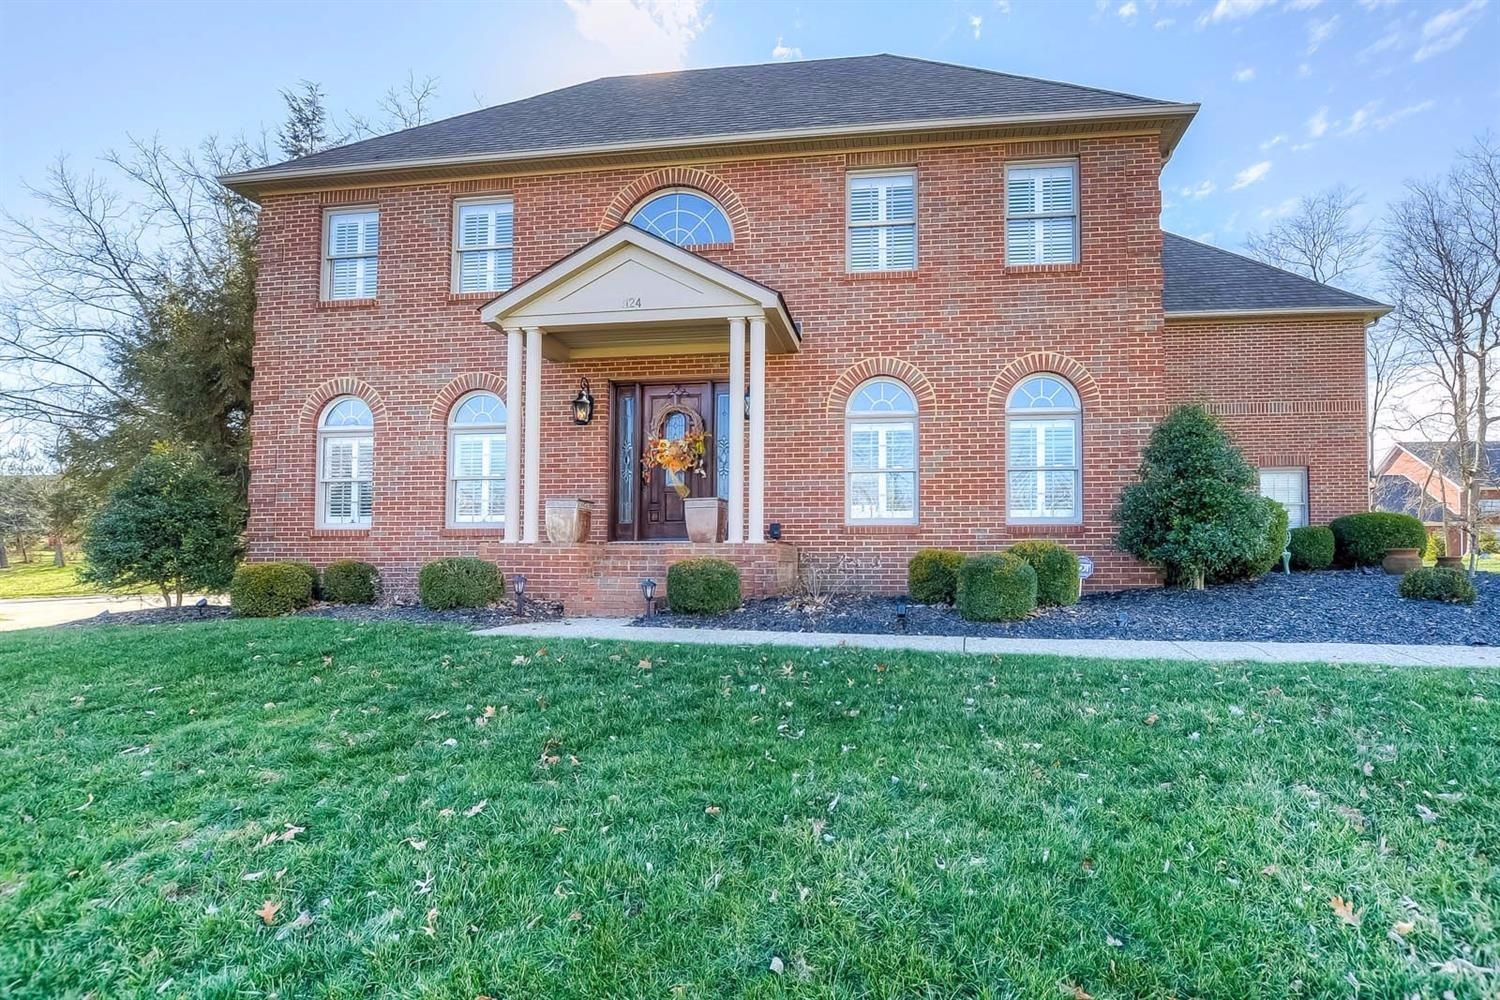 Now%20priced%20below%20recent%20appraisal!%20Stunning%20one-owner%20home%20in%20the%20desirable%20Discher%20Estates.%20%20When%20you%20walk%20in%20this%20custom%20built%20home%20you%20%20%20are%20immediately%20drawn%20to%20the%20beauty%20&%20details%20in%20each%20room.%20Solid%20hardwood%20floors,%20custom%20crown%20moldings%20&%20trim%20work,%20vaulted%20ceilings,%20natural%20light%20that%20floods%20every%20room,%20quartz%20counter%20tops%20in%20the%20kitchen,%20floor%20to%20ceiling%20brick%20fireplace,%20custom-fitted%20plantation%20wood%20blinds,%20huge%20master%20bathroom%20that%20has%20been%20elegantly%20remodeled,%20walk%20in%20his/hers%20closets,%20a%20bonus%20room%20off%20the%20master%20bedroom%20that%20could%20be%20a%20home%20office,%20nursery,%20or%20craft%20room.%20New%20Hybrid%20Bryant%20HVAC%20units%20to%20last%20for%20years%20to%20come.%20%20Outside%20is%20professionally%20landscaped%20with%20trees,%20bushes,%20&%20flowers%20that%20are%20bursting%20with%20color%20all%20spring%20and%20summer.%20%20Peonies,%20dogwoods,%20golden%20maples,%20magnolias,%20&%20much%20more.%20%20The%20massive%20stamped%20concrete%20patio%20is%20large%20enough%20for%20any%20party%20with%20friends%20&%20family.%20%20I%20could%20go%20on%20and%20on...%20%20Don't%20miss%20this%20one!%20%20It%20is%20a%20perfect%20place%20to%20call%20home